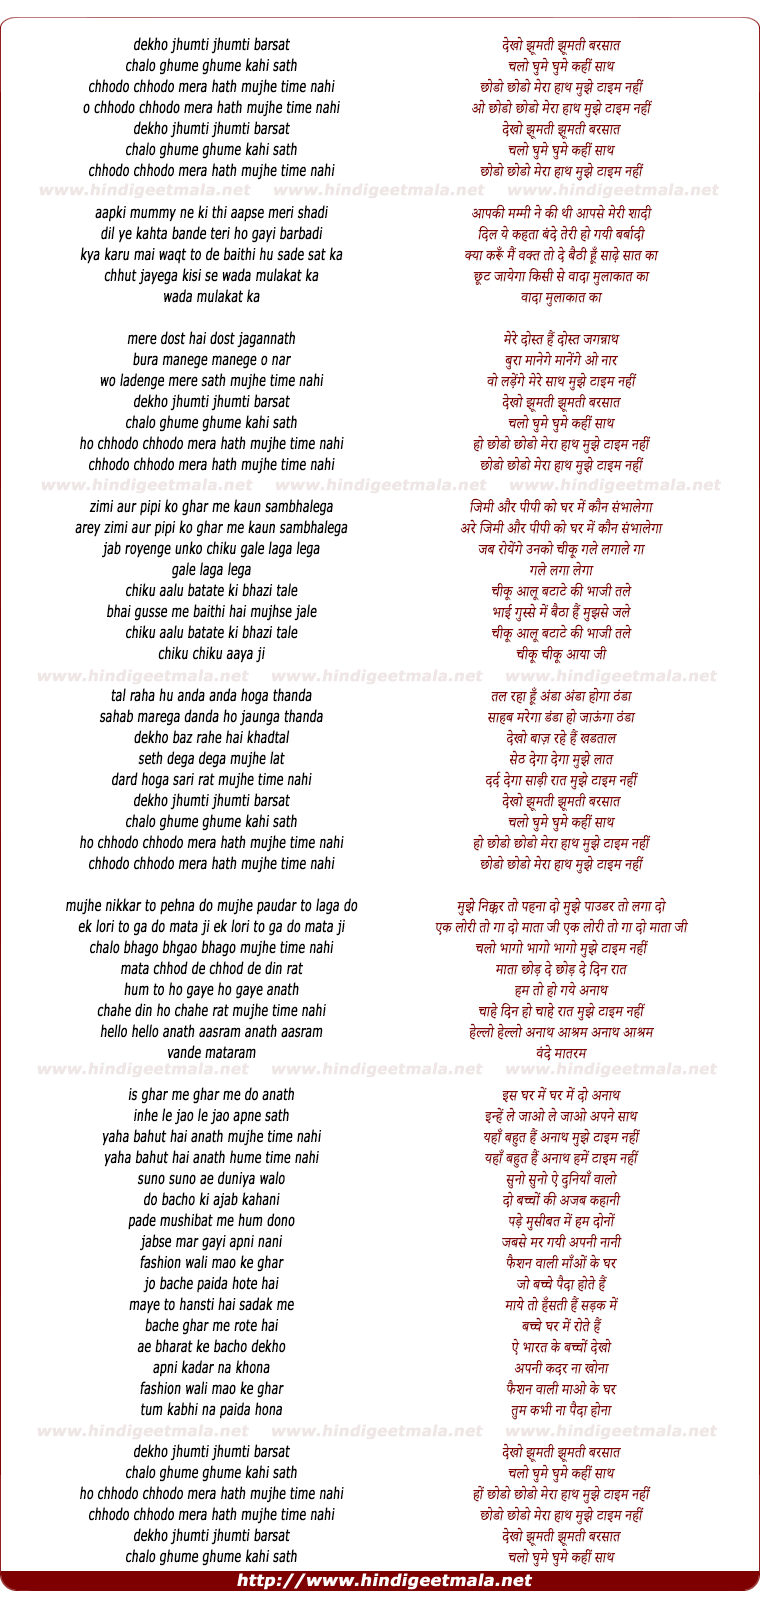 lyrics of song Dekho Jhumti Barsat Chalo Ghume